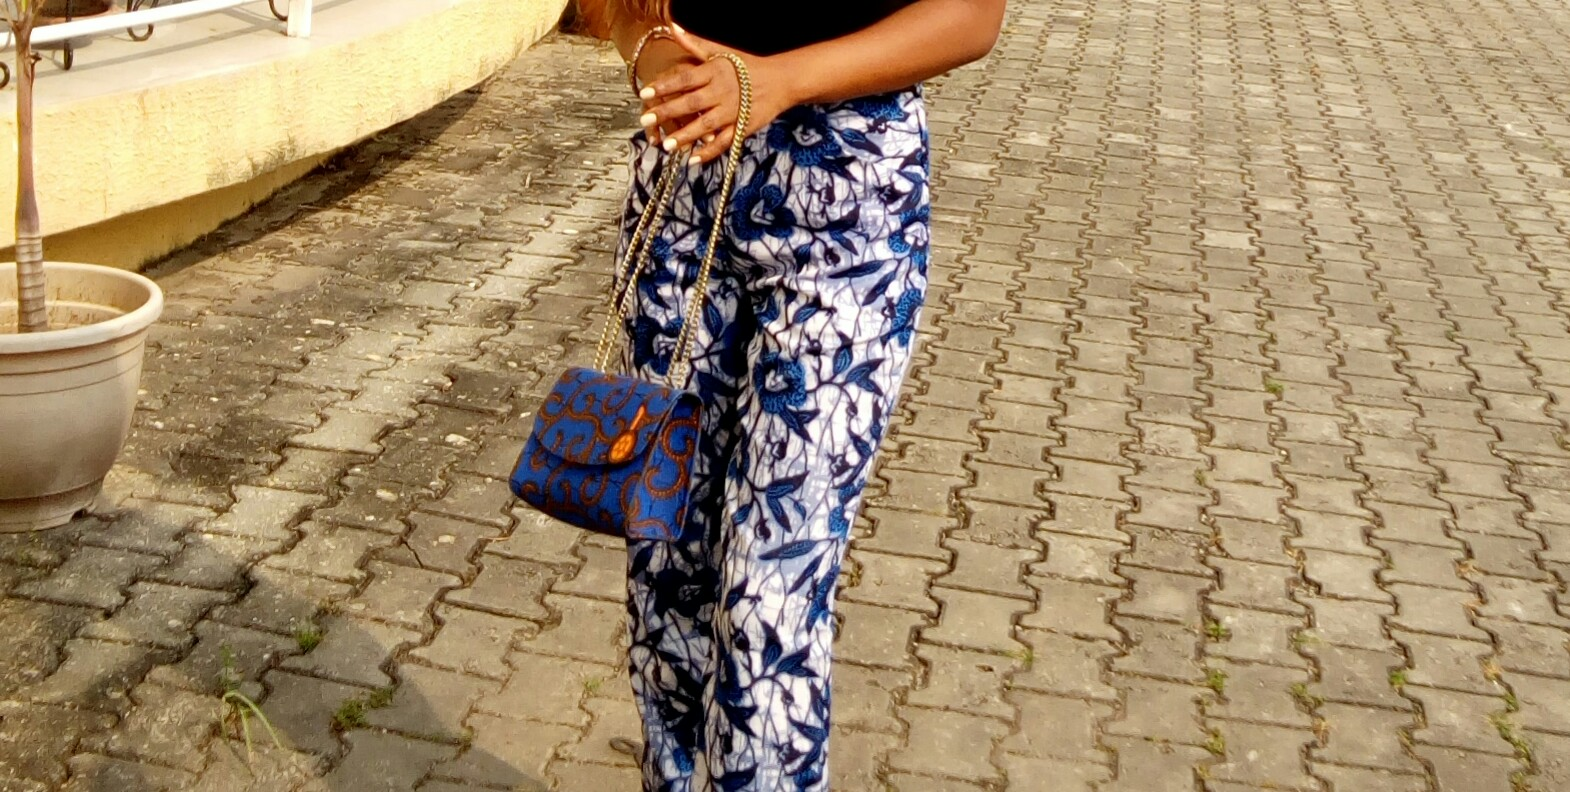 new-year-ankara-pants-flared-pants-style-post-fashion-diary-ankara-bag-prints-hair-makeup-subtle-makeup-natural-makeup-simple-makeup-look-lookbook-fashion-style-lifestyle-valentines-outfit